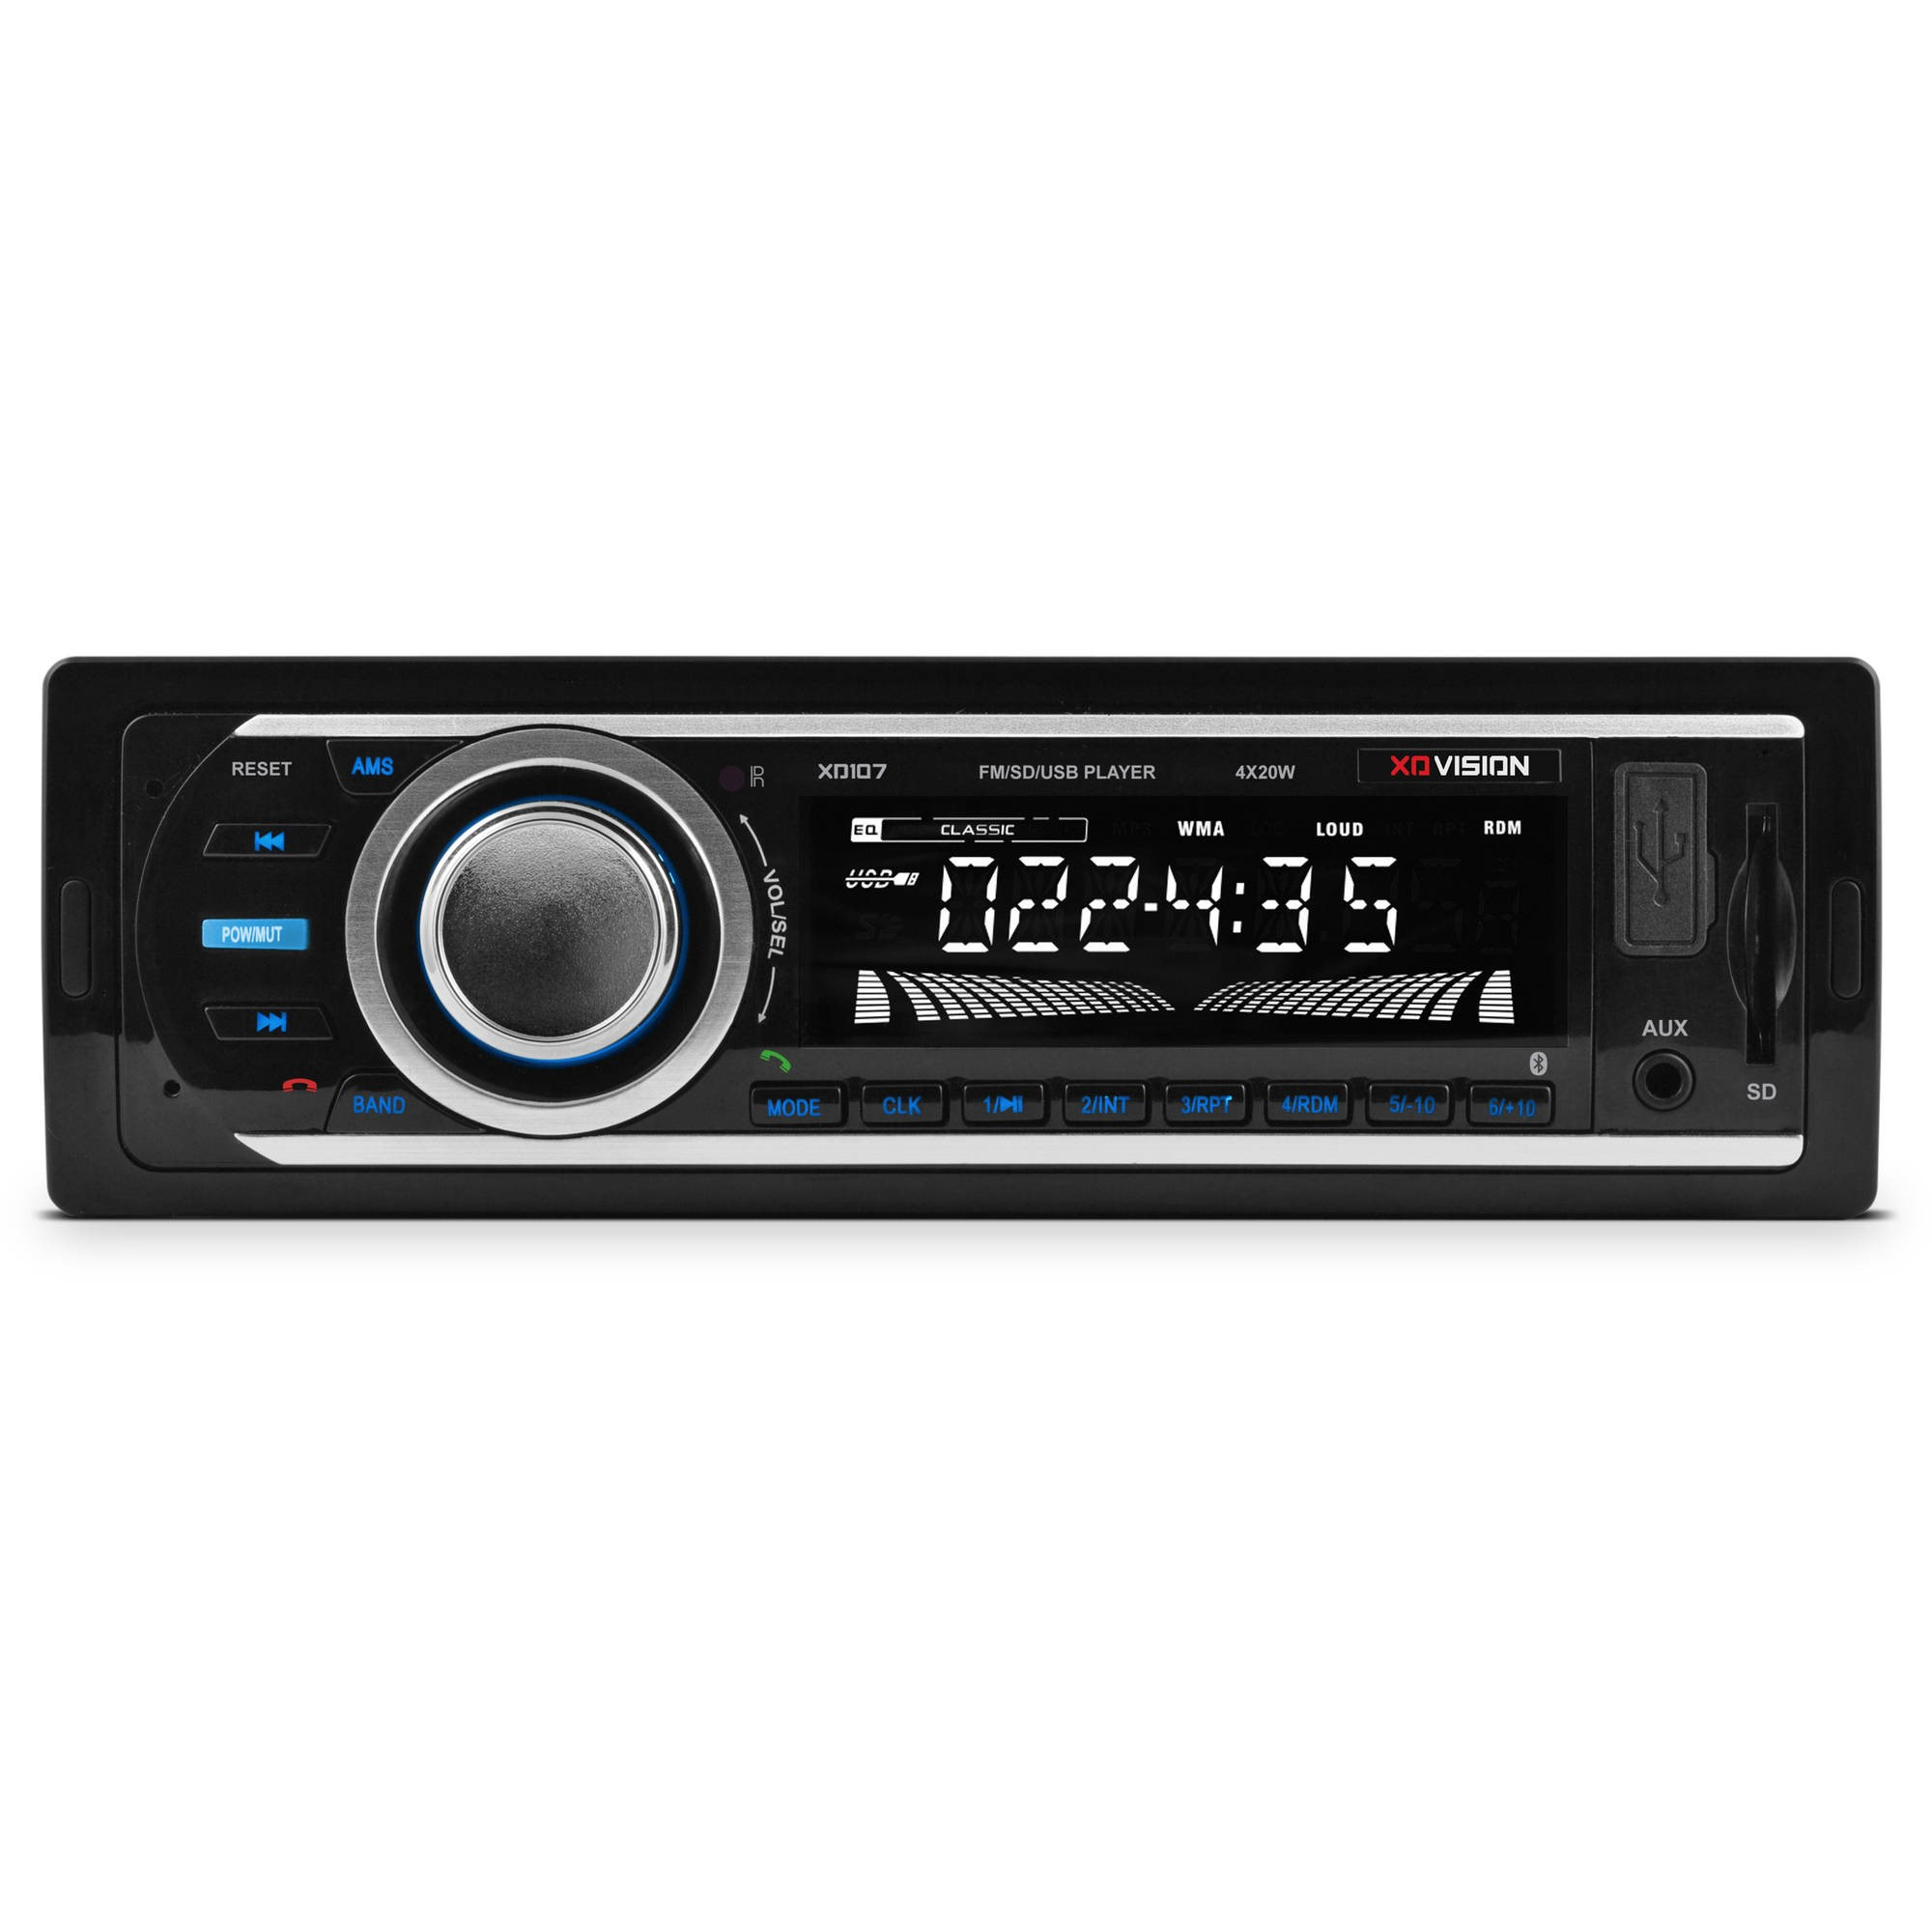 Xo Vision Xd107 Single-din In-dash Fm/mp3 Stereo Digital Media Receiver With Usb Port & Sd Card Slot